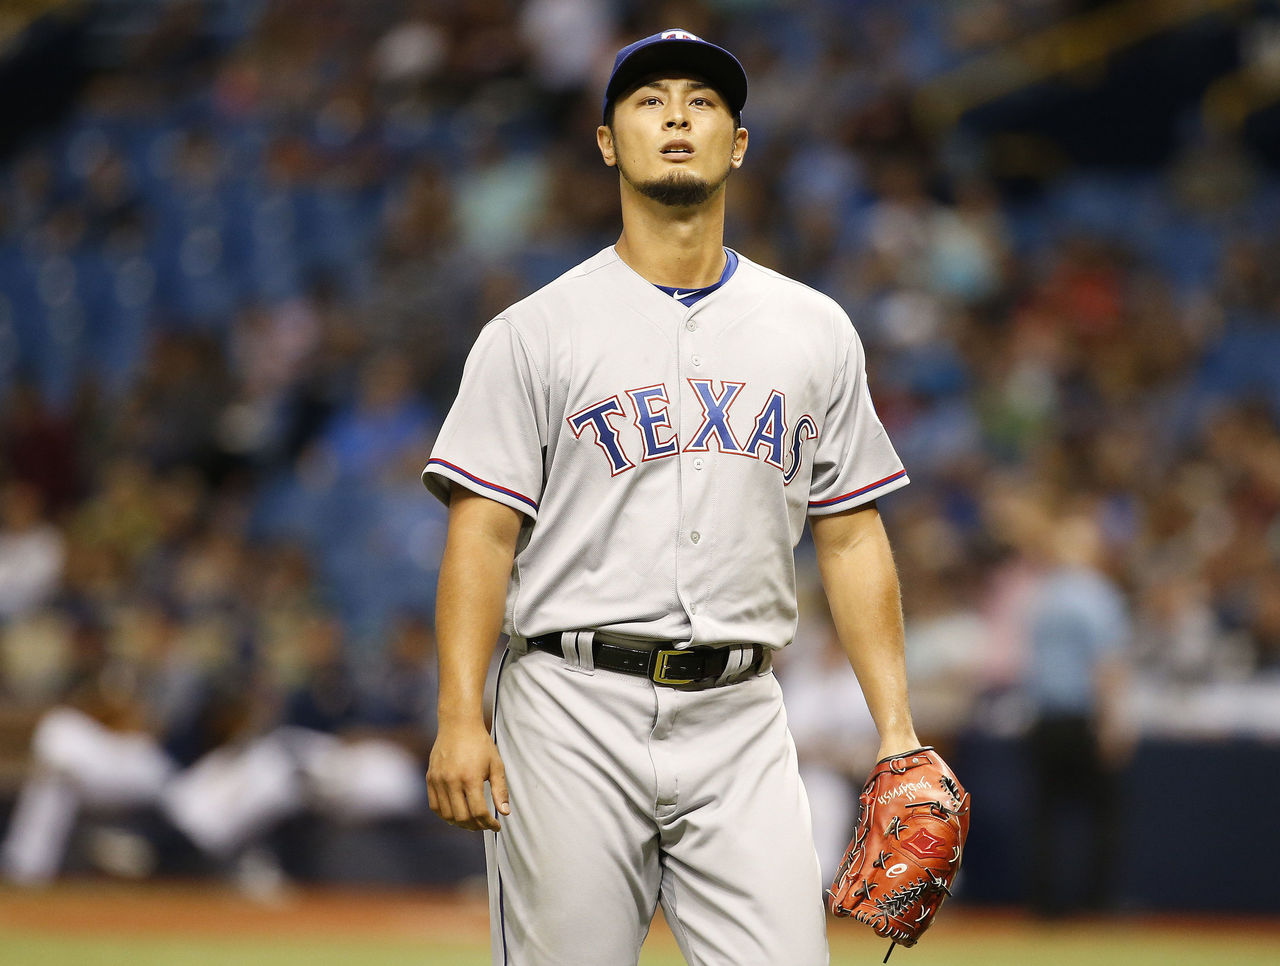 Cropped_2017-07-22t002152z_587917918_nocid_rtrmadp_3_mlb-texas-rangers-at-tampa-bay-rays